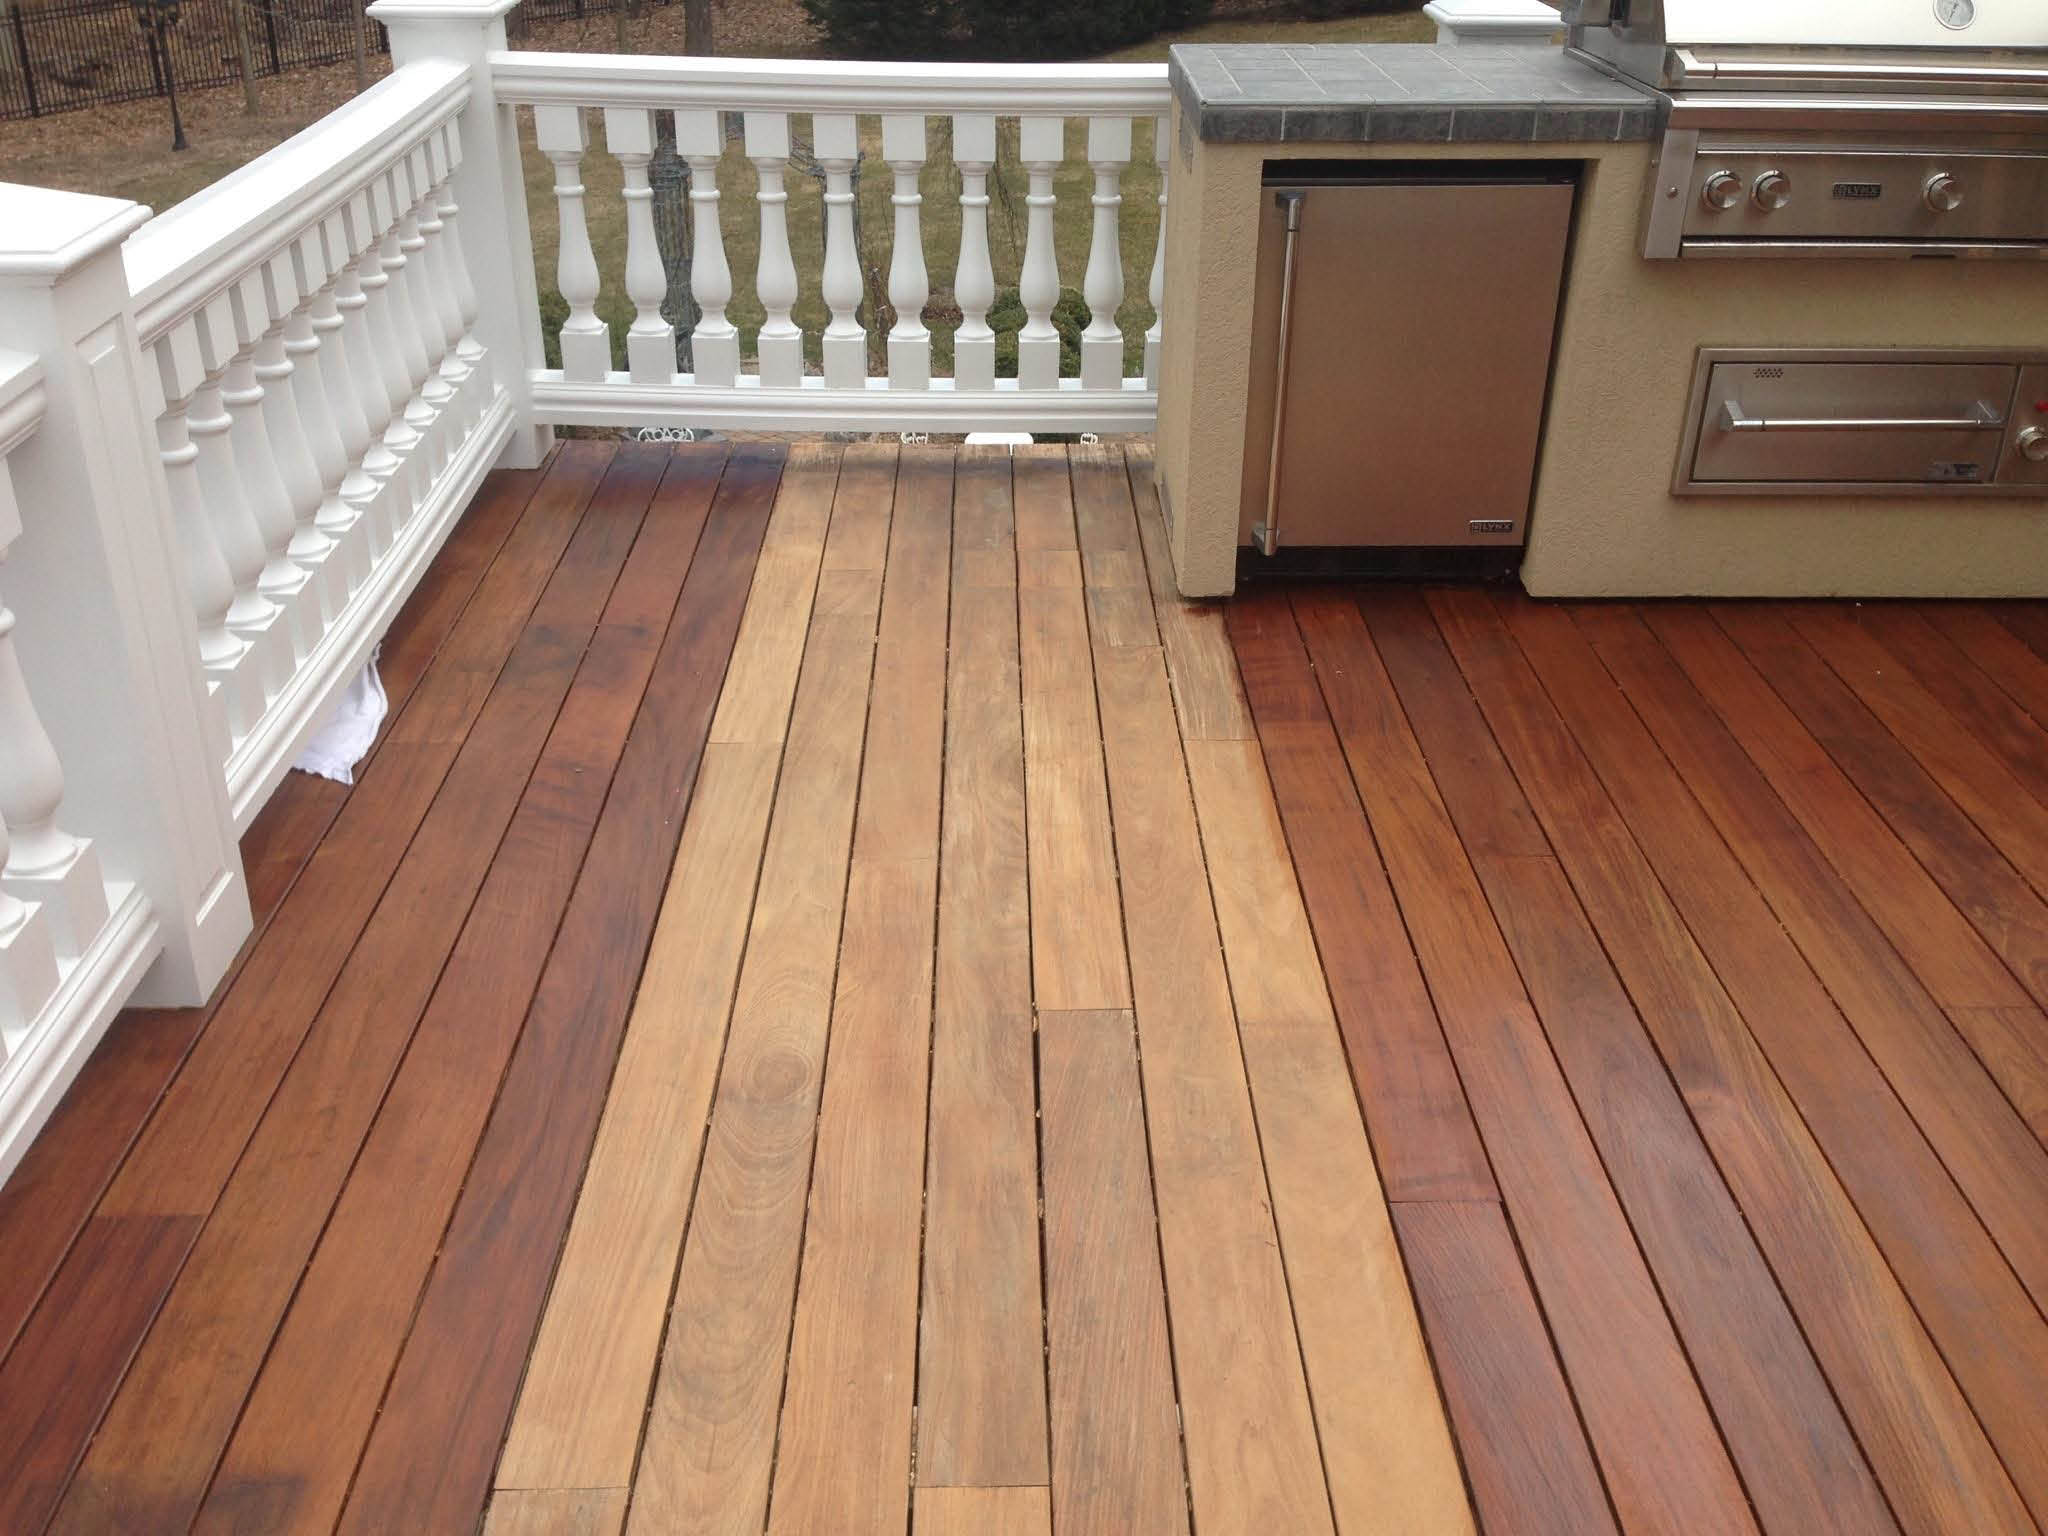 Deck Cleaning & Sealing from Burrini's Power Washing in Randolph NJ